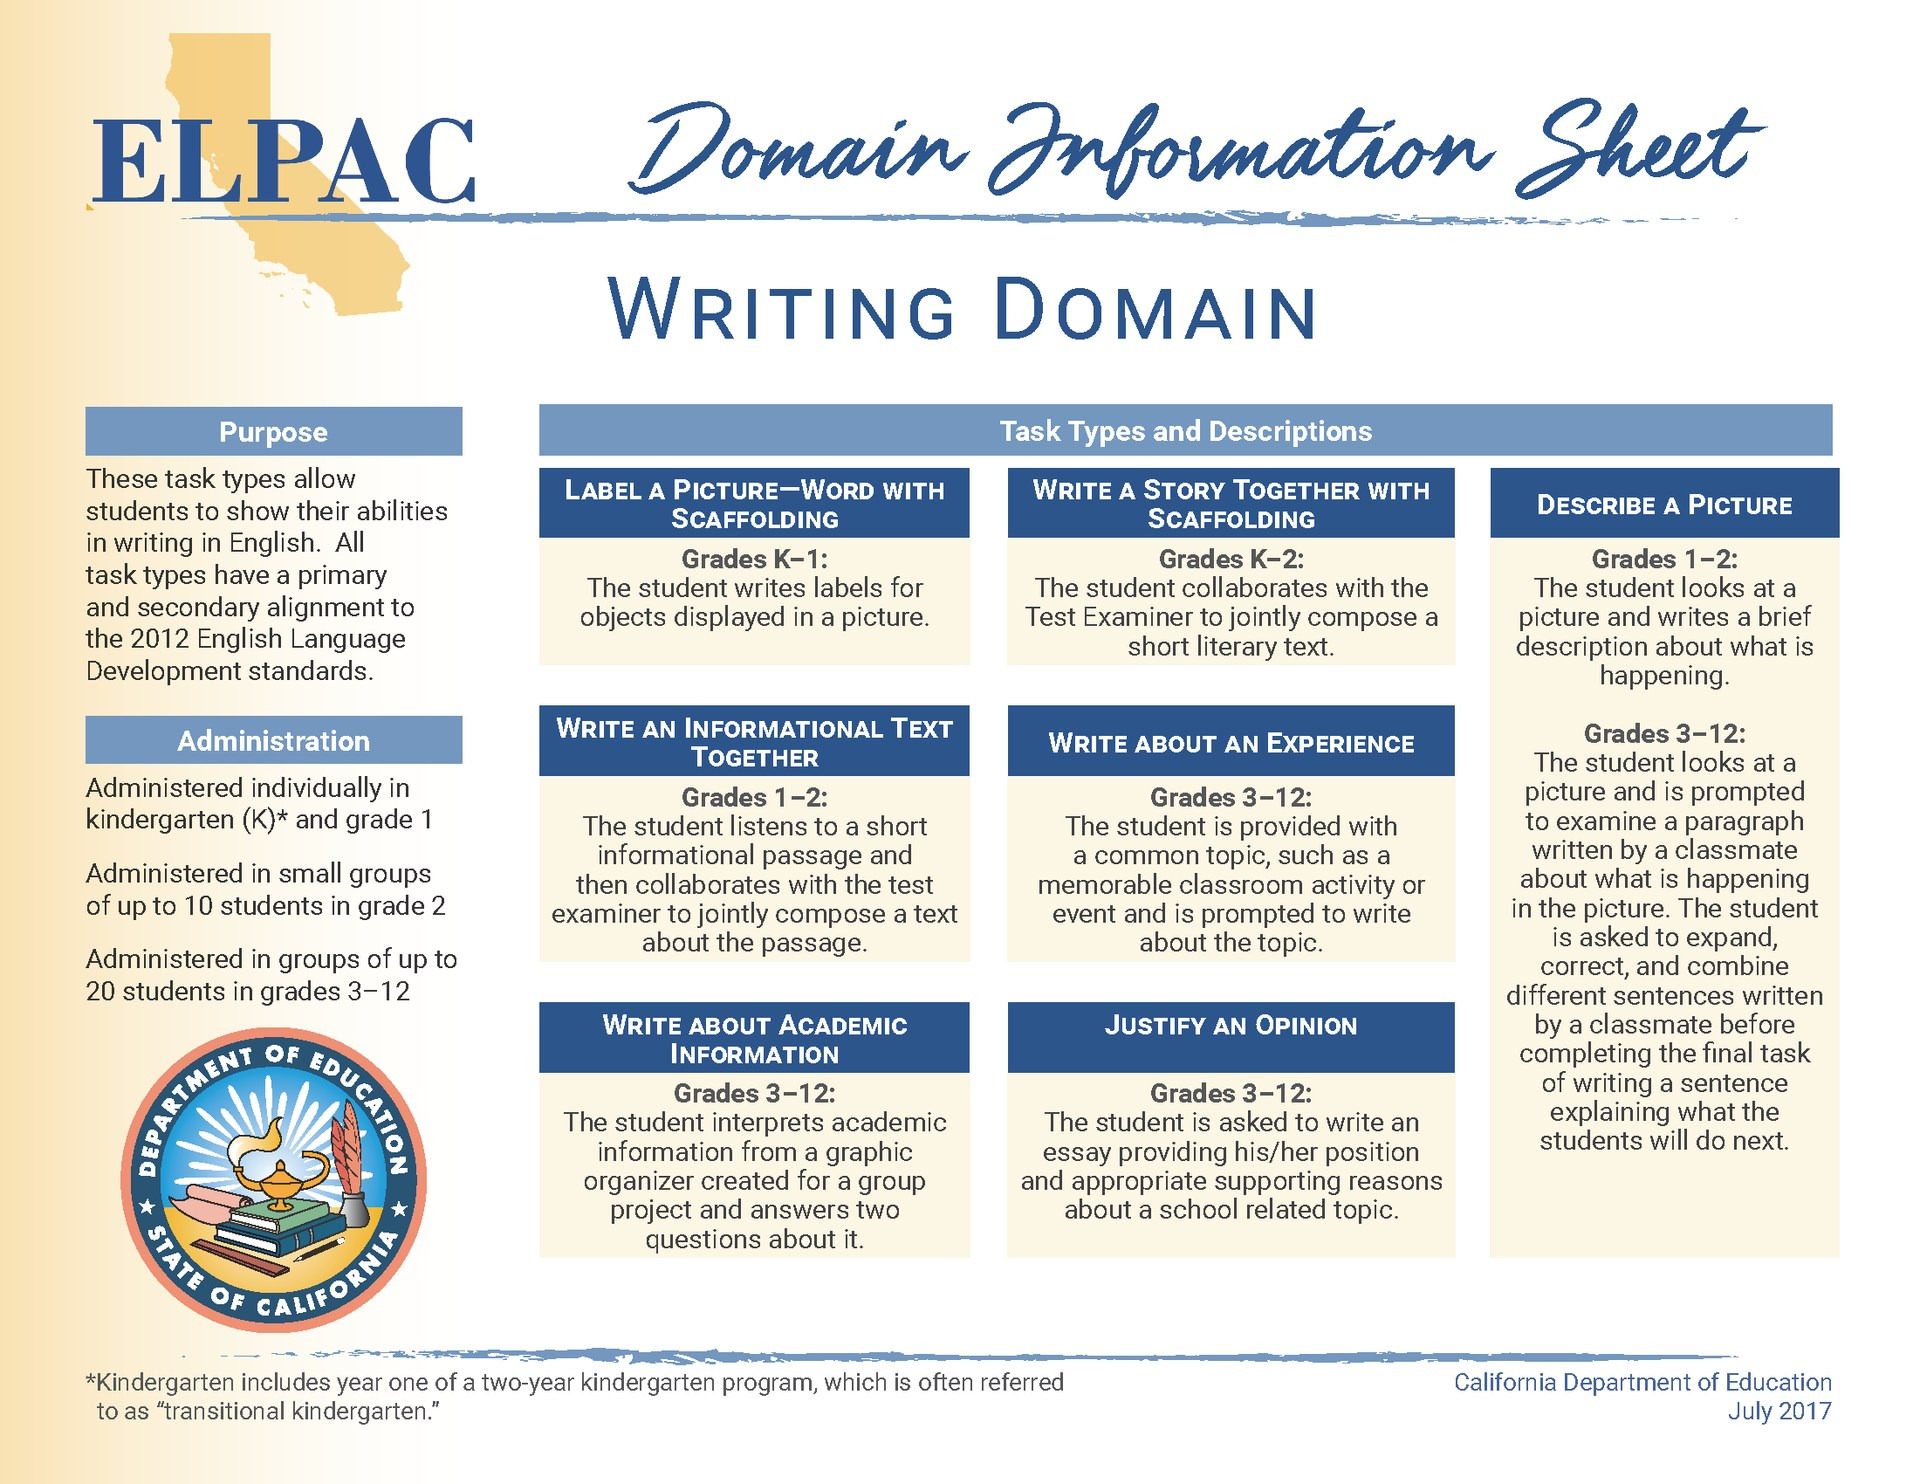 ELPAC Writing DOmain